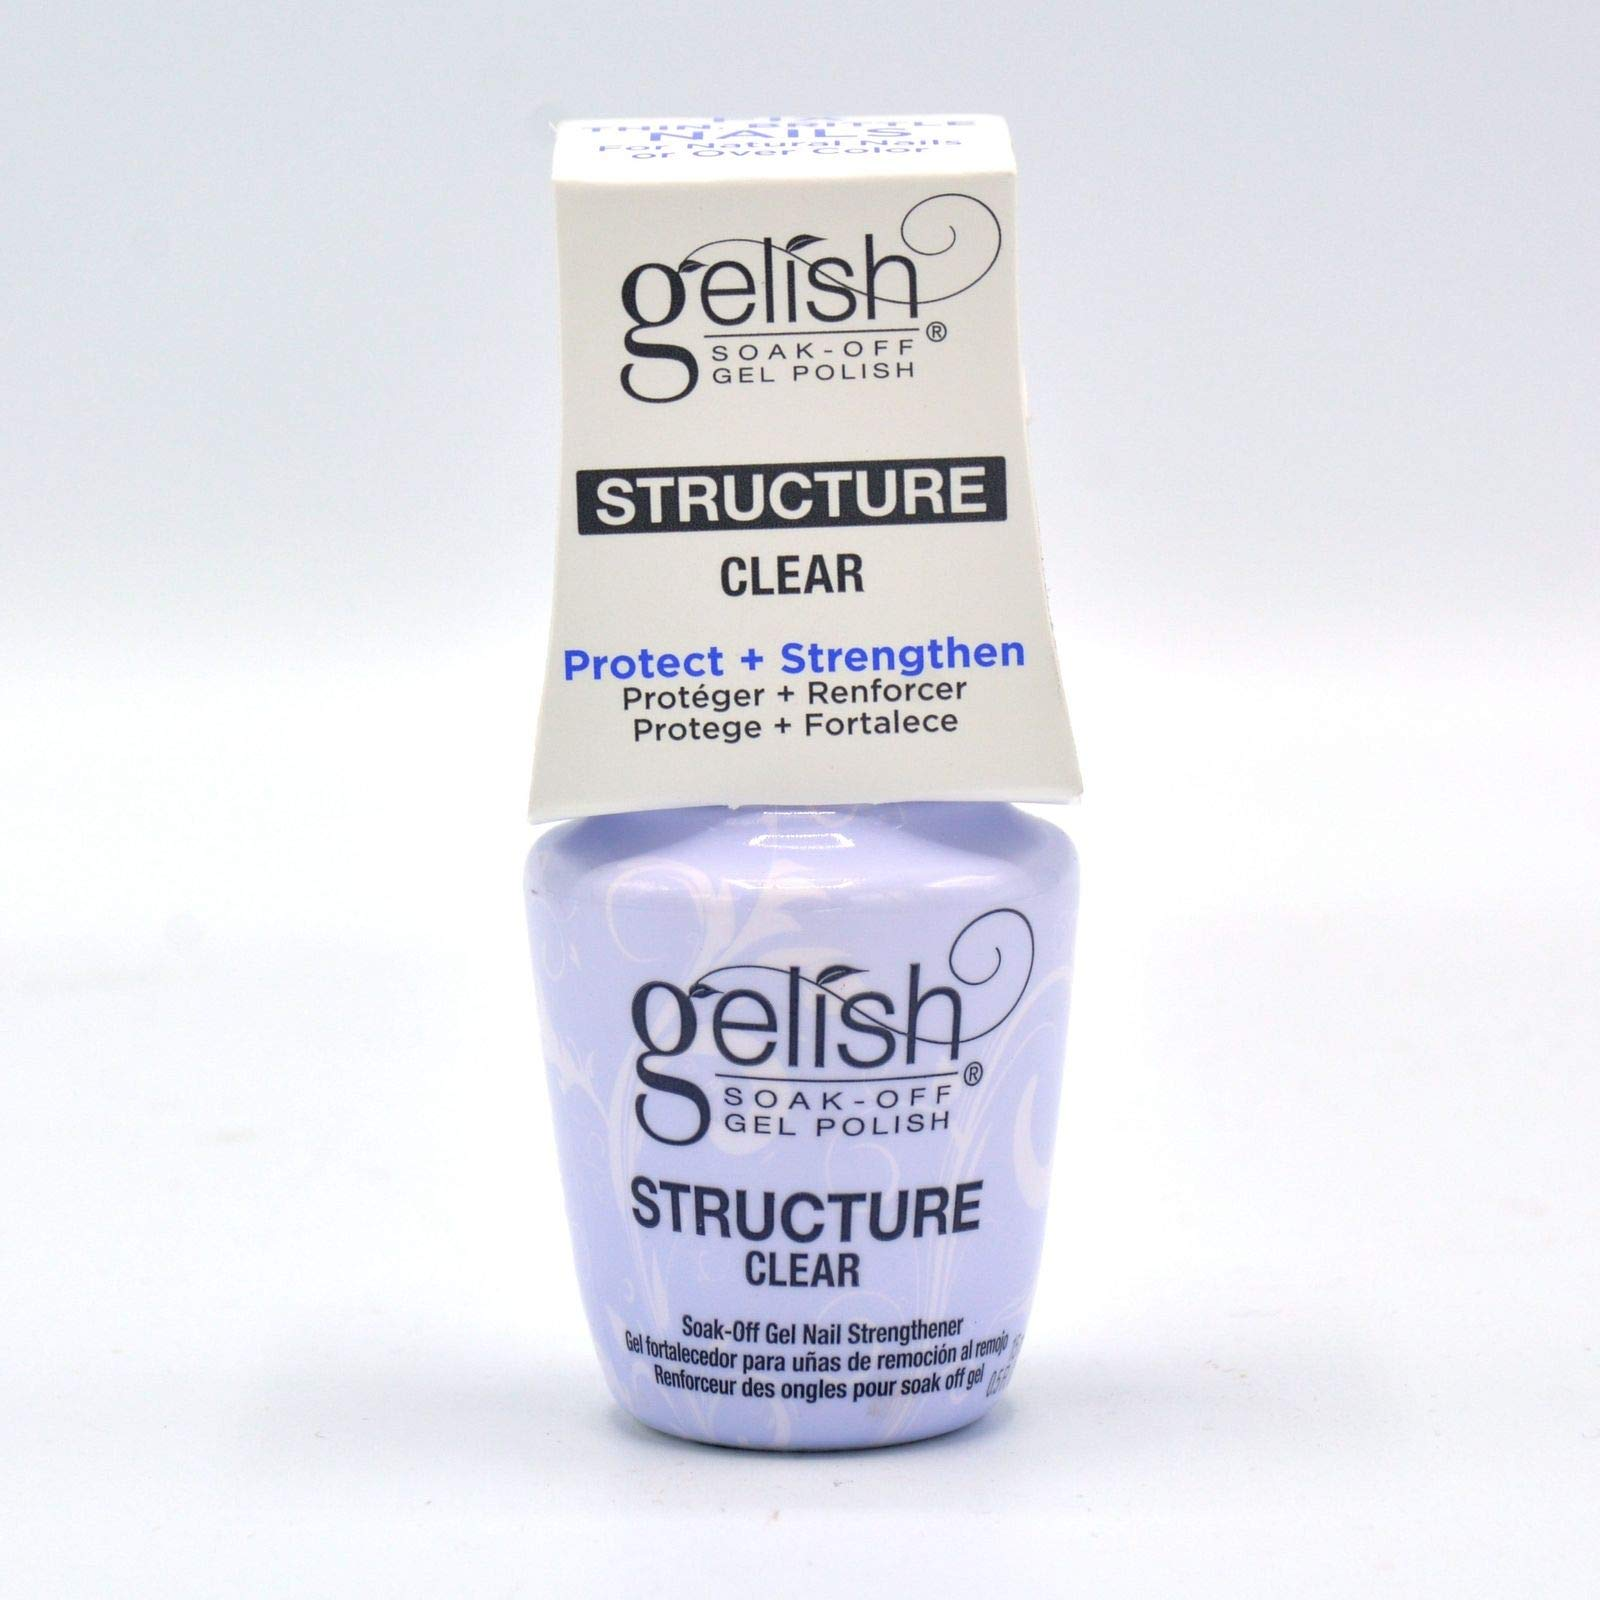 Soak-Off Gel - Structure Gel Clear 0.5oz/15ml